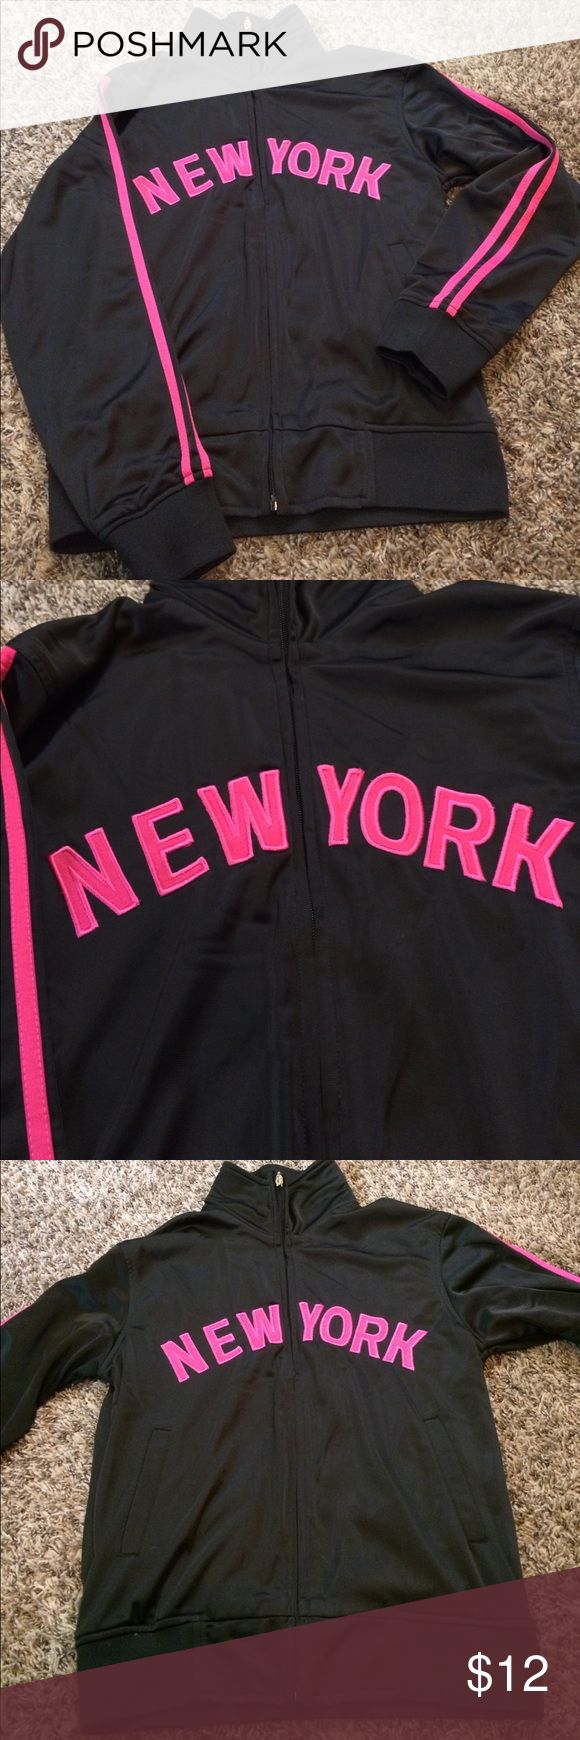 New York black athletic jacket Thicker material black athletic jacket with NEW YORK across the chest in hot pink, 2 hot pink stripes down the sleeves and NYC at top of back in hot pink. No signs of wear! Excellent condition! Bundle for further discounts! Futbol Jackets & Coats